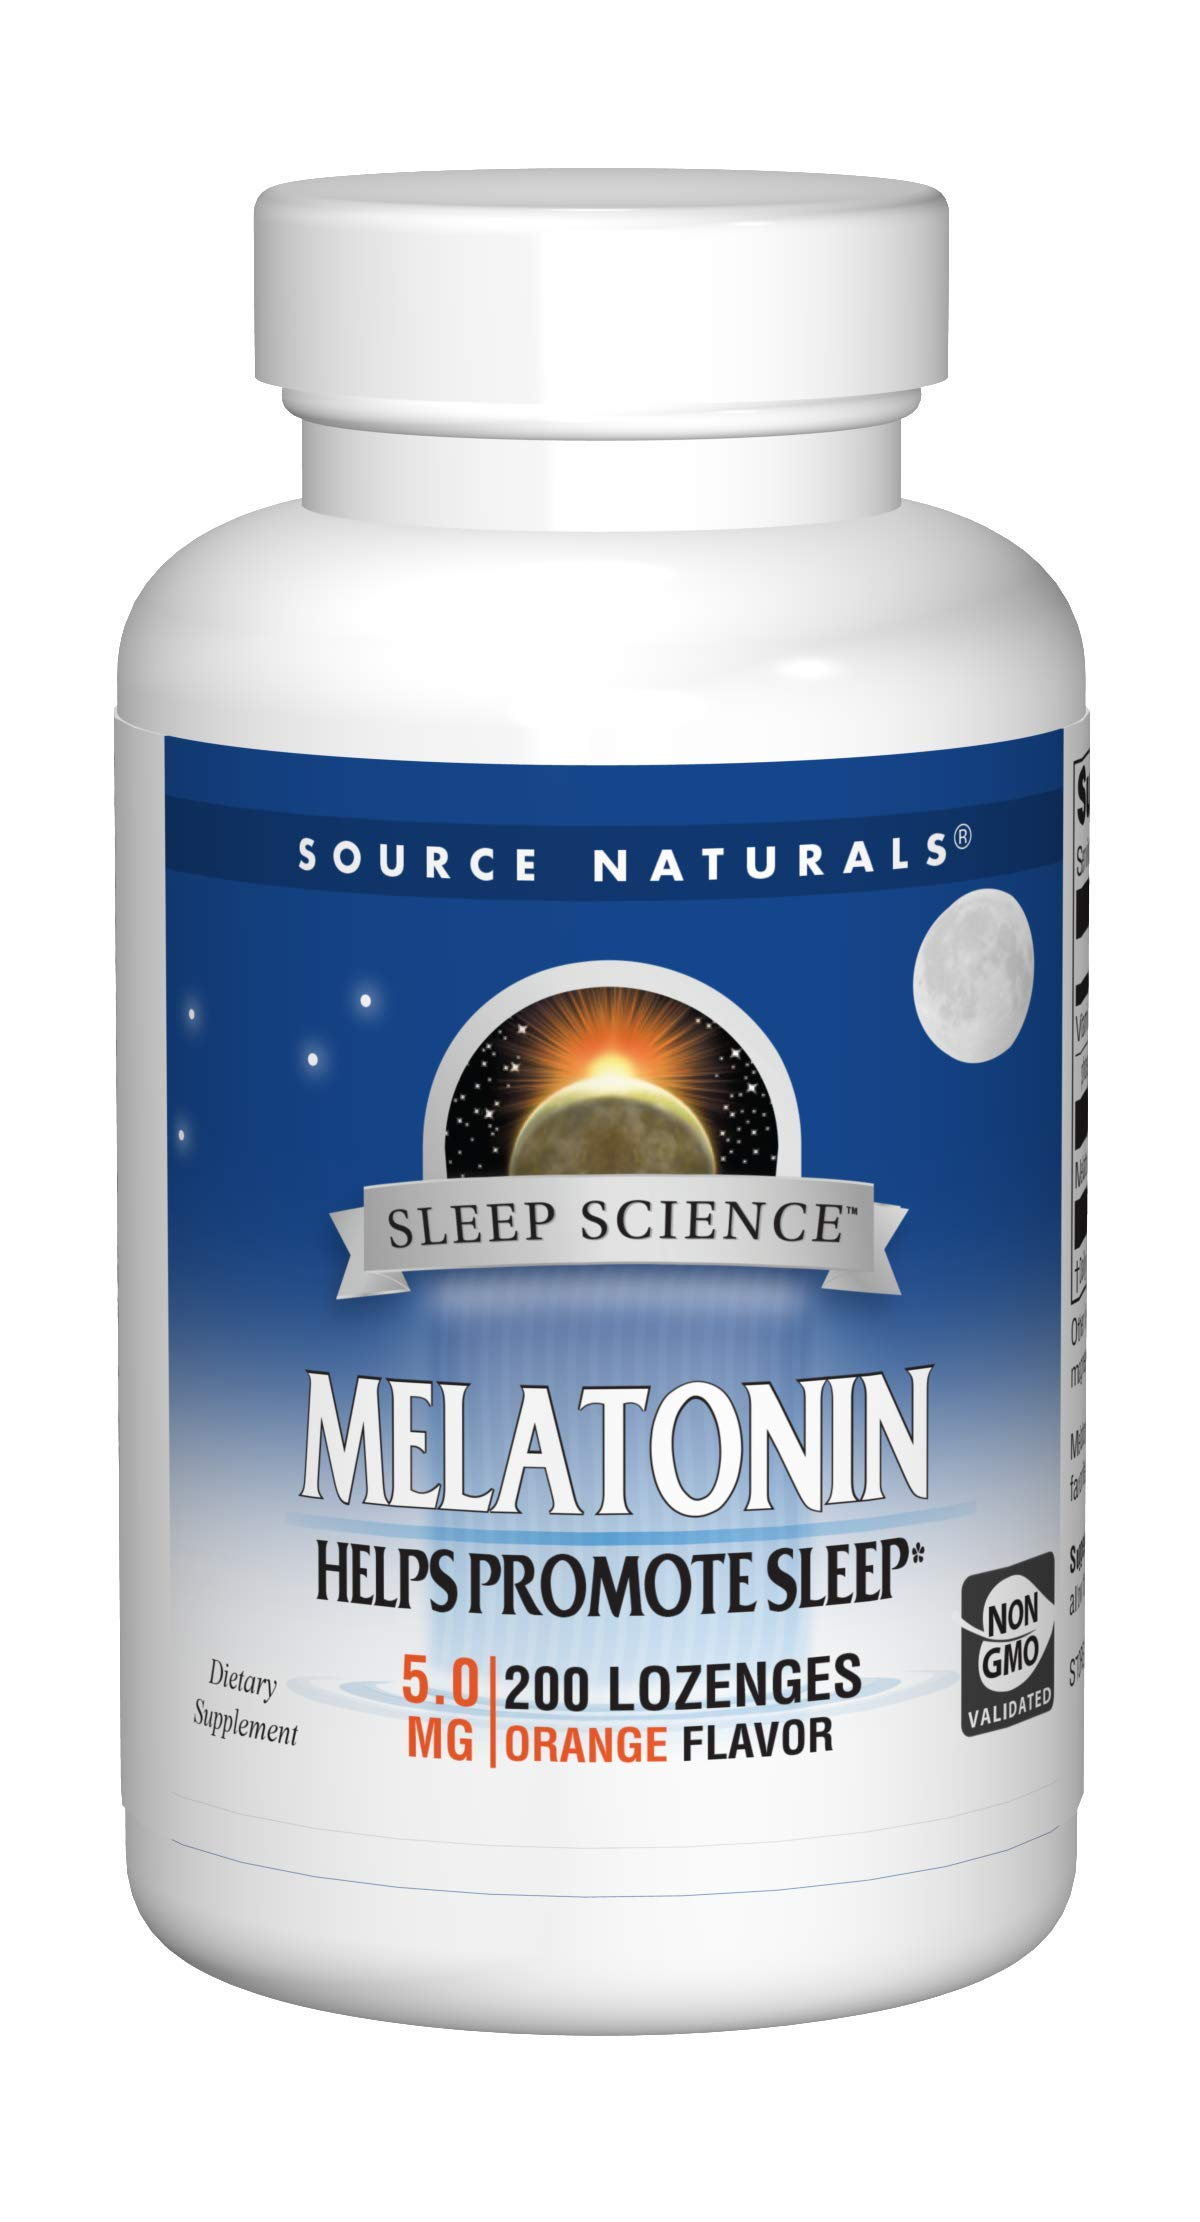 Source Naturals Sleep Science Melatonin 5mg Orange Flavor - 200 Lozenges by Source Naturals